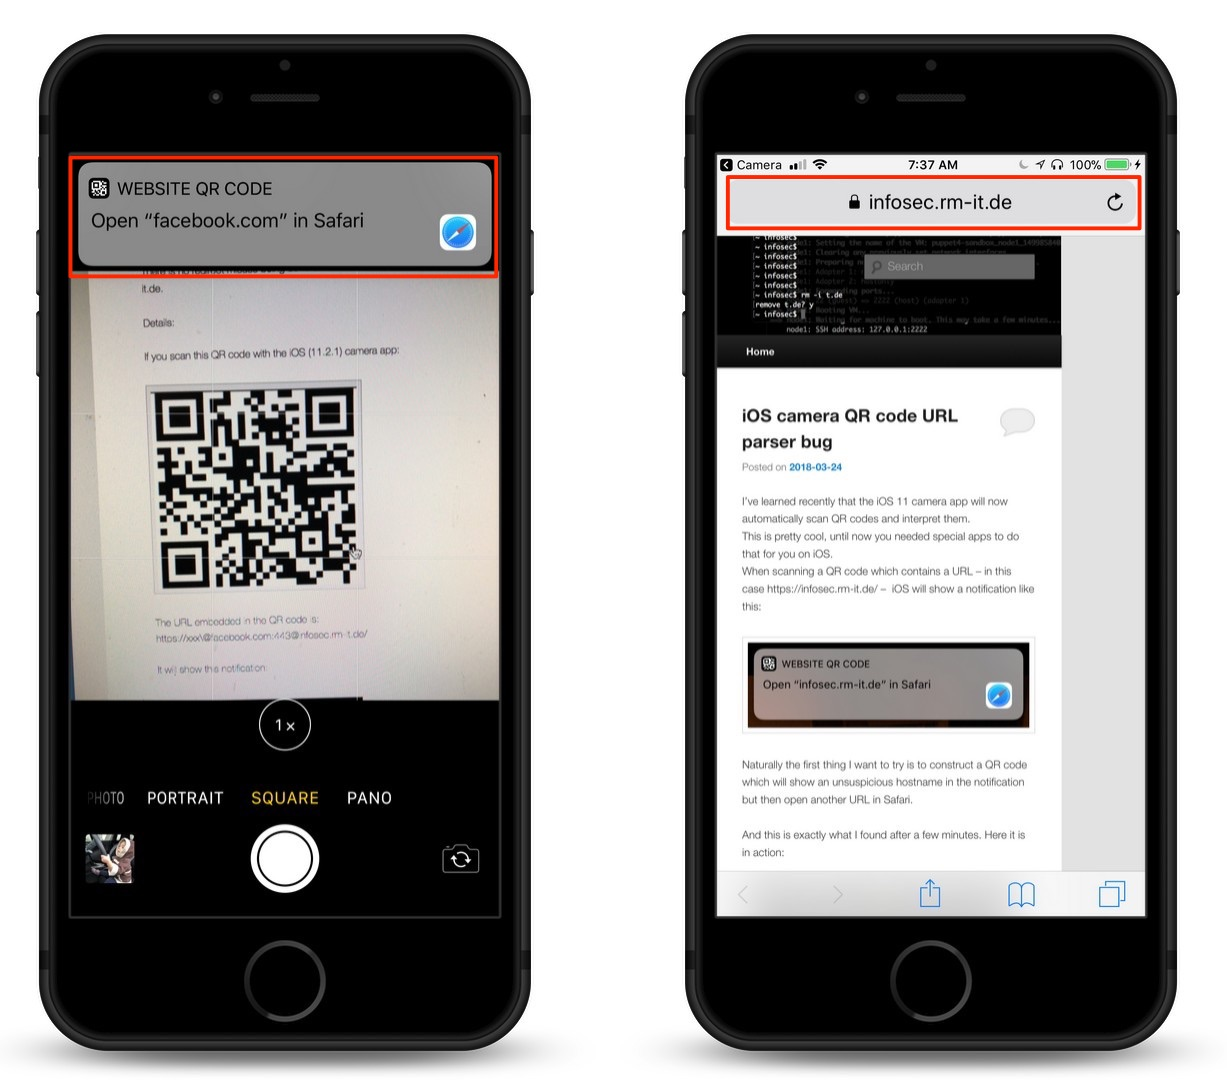 iOS 11 Vulnerability in Camera App's QR Code Reader Could Send Users to Malicious Websites